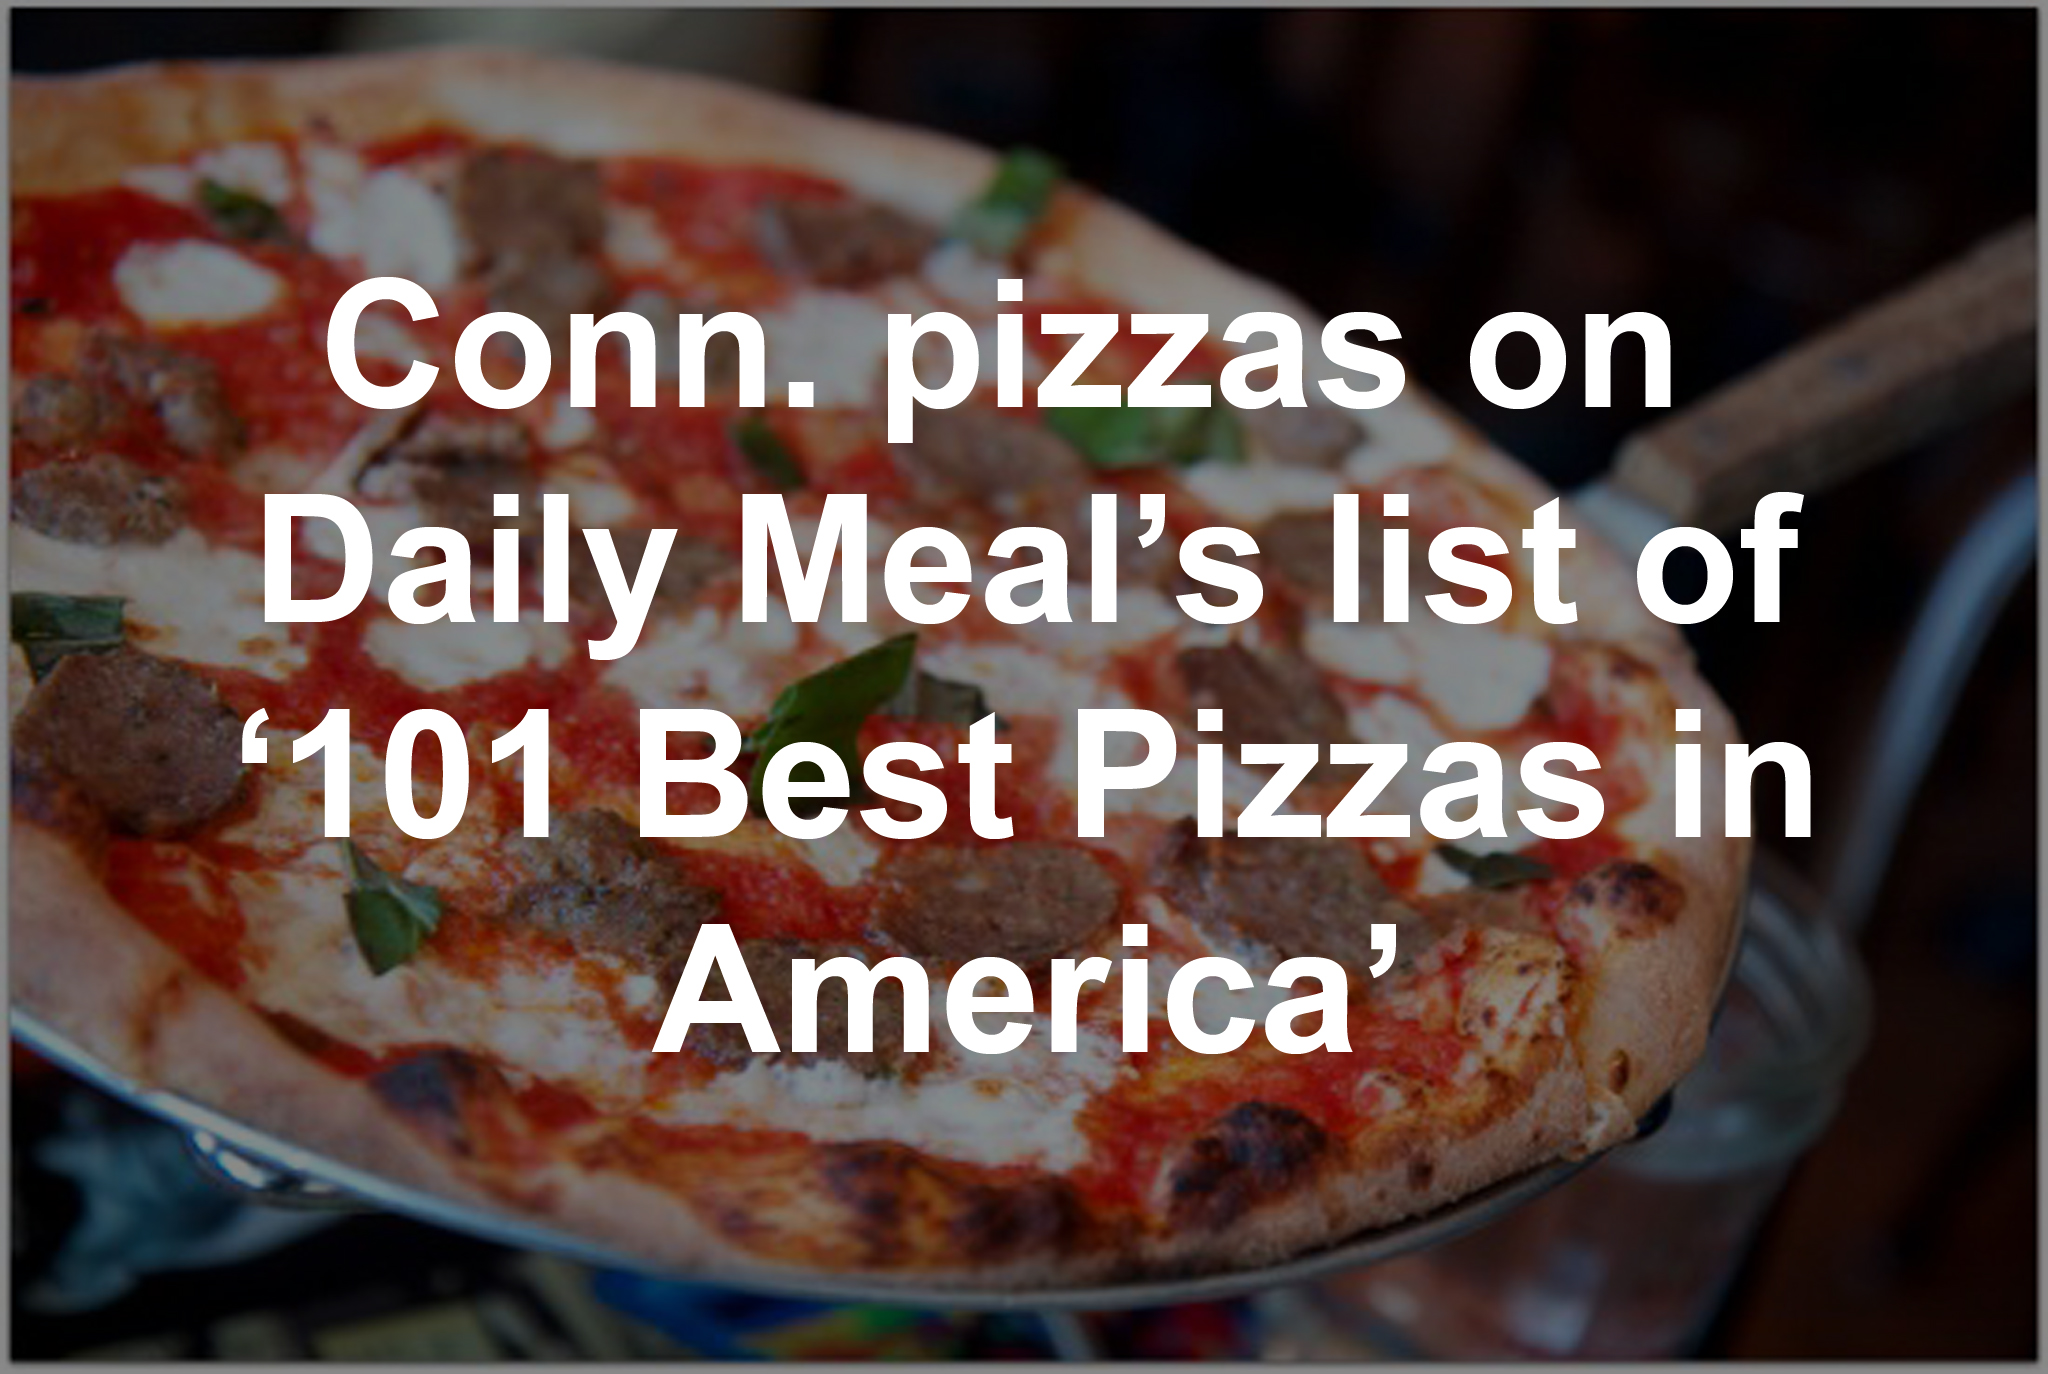 Nine Connecticut Pies Make List Of 101 Best Pizzas In The